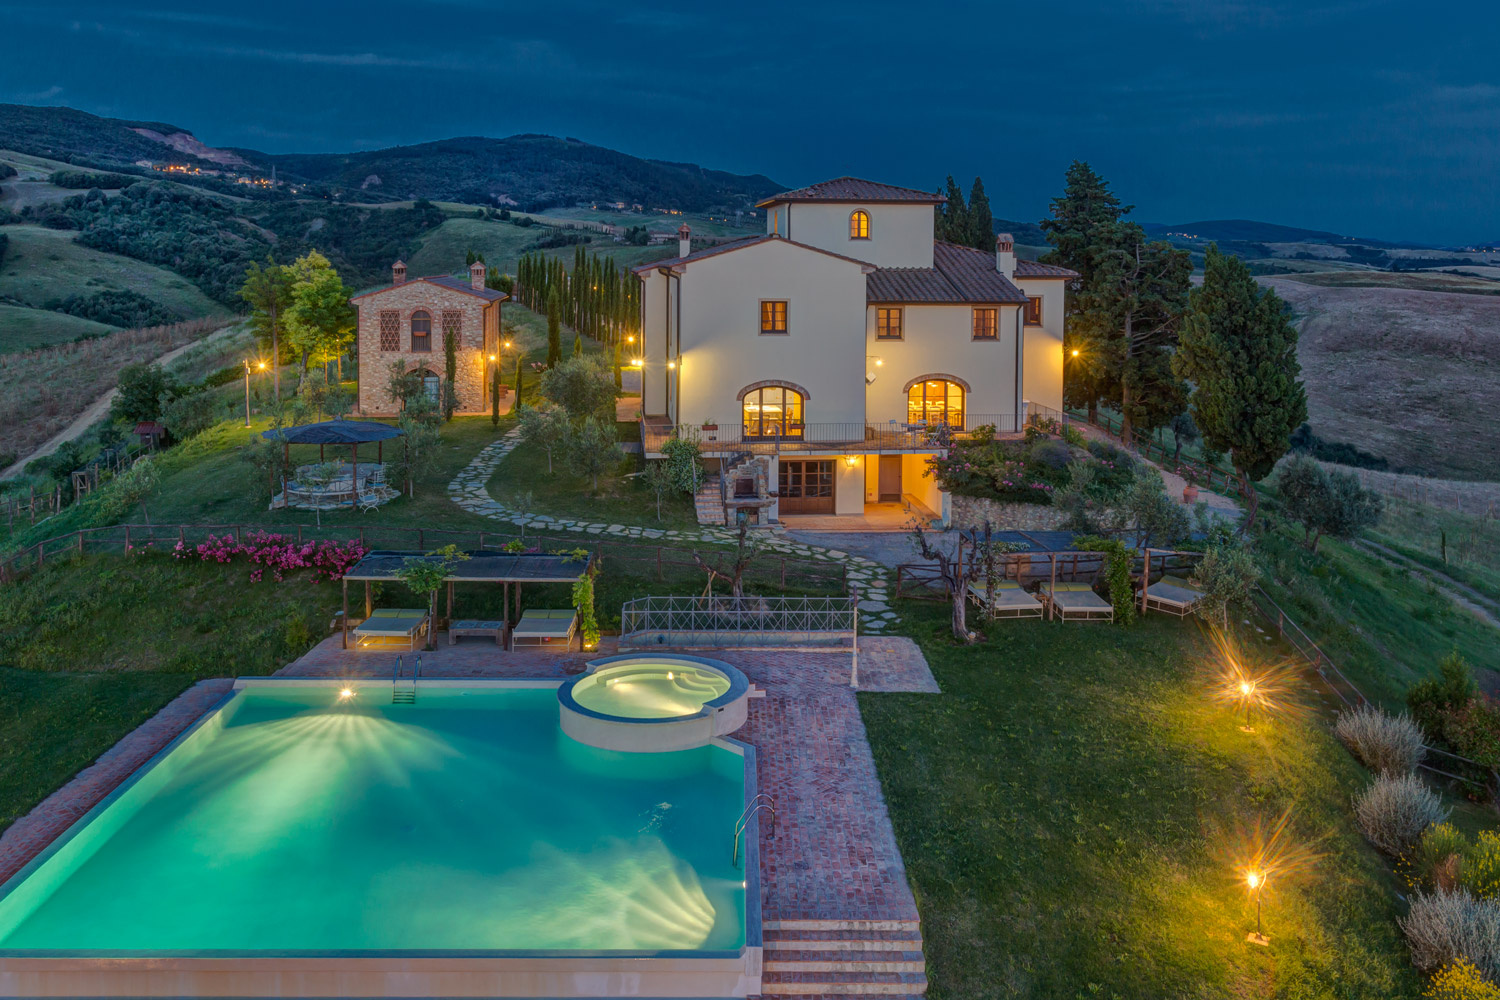 Villa ciggiano l hospitality tailor made che incontra l for Piani di piscina